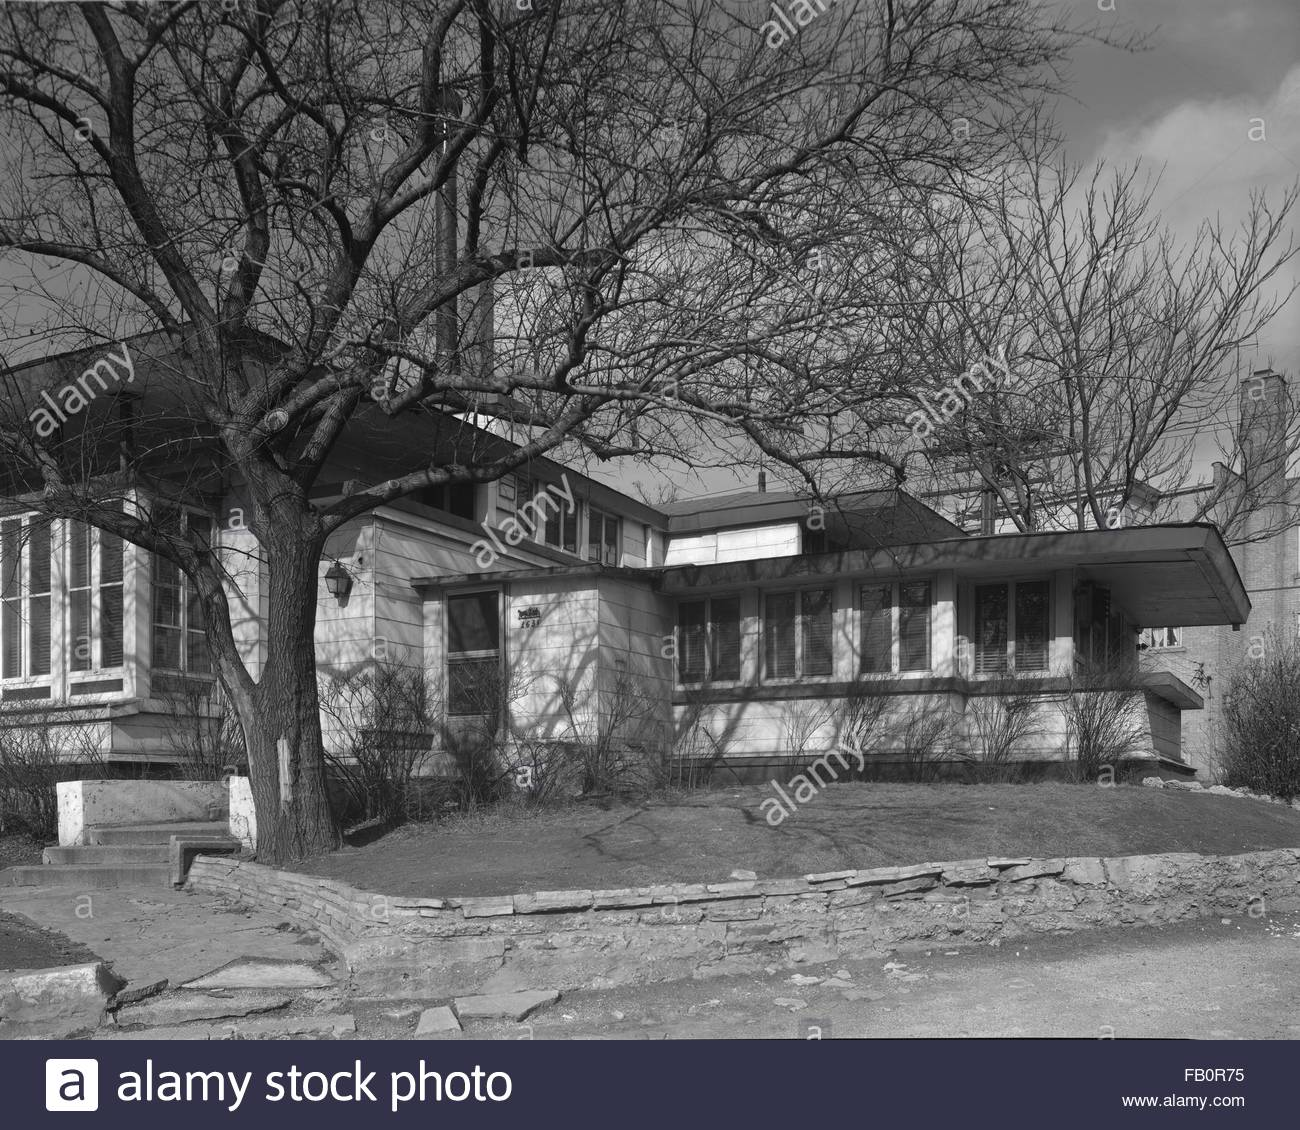 Oscar Steffens residence in Chicago (Ill.), 1963. Side of house. - Stock Image